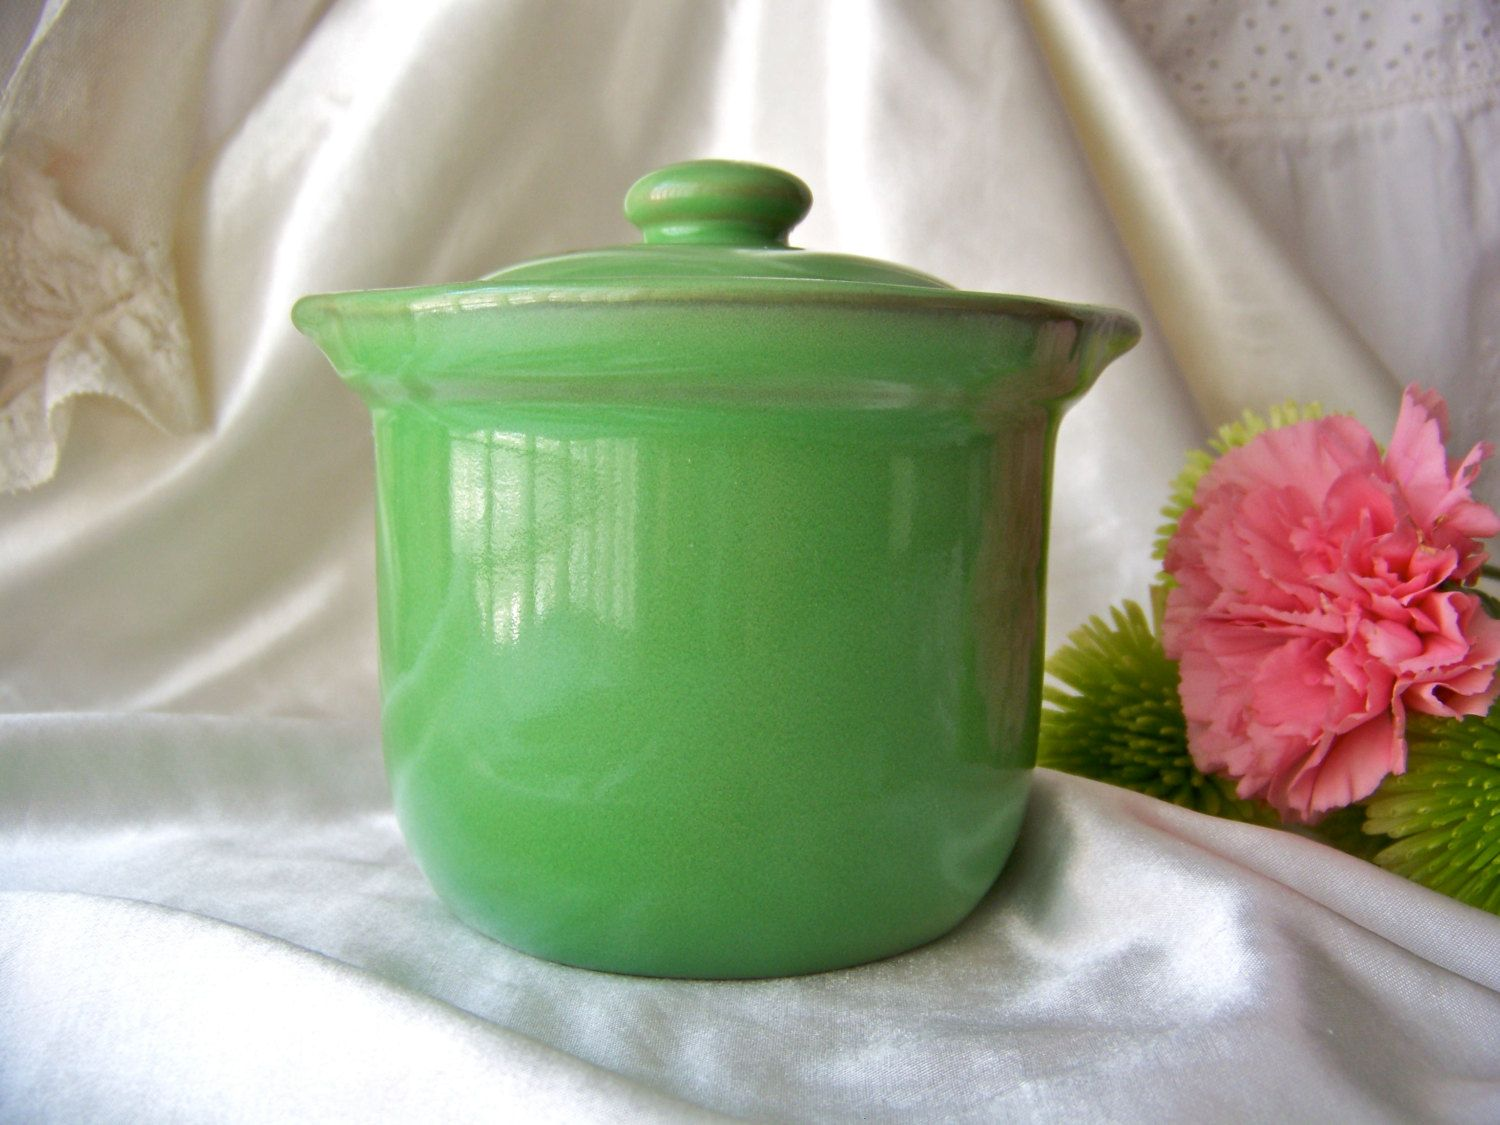 antique crock china green with lid hall pottery by cynthiasattic antique crock china green with lid hall pottery jar lidded crock stands 4 inches tall by 4 inches wide lovely green crock in in very good condition